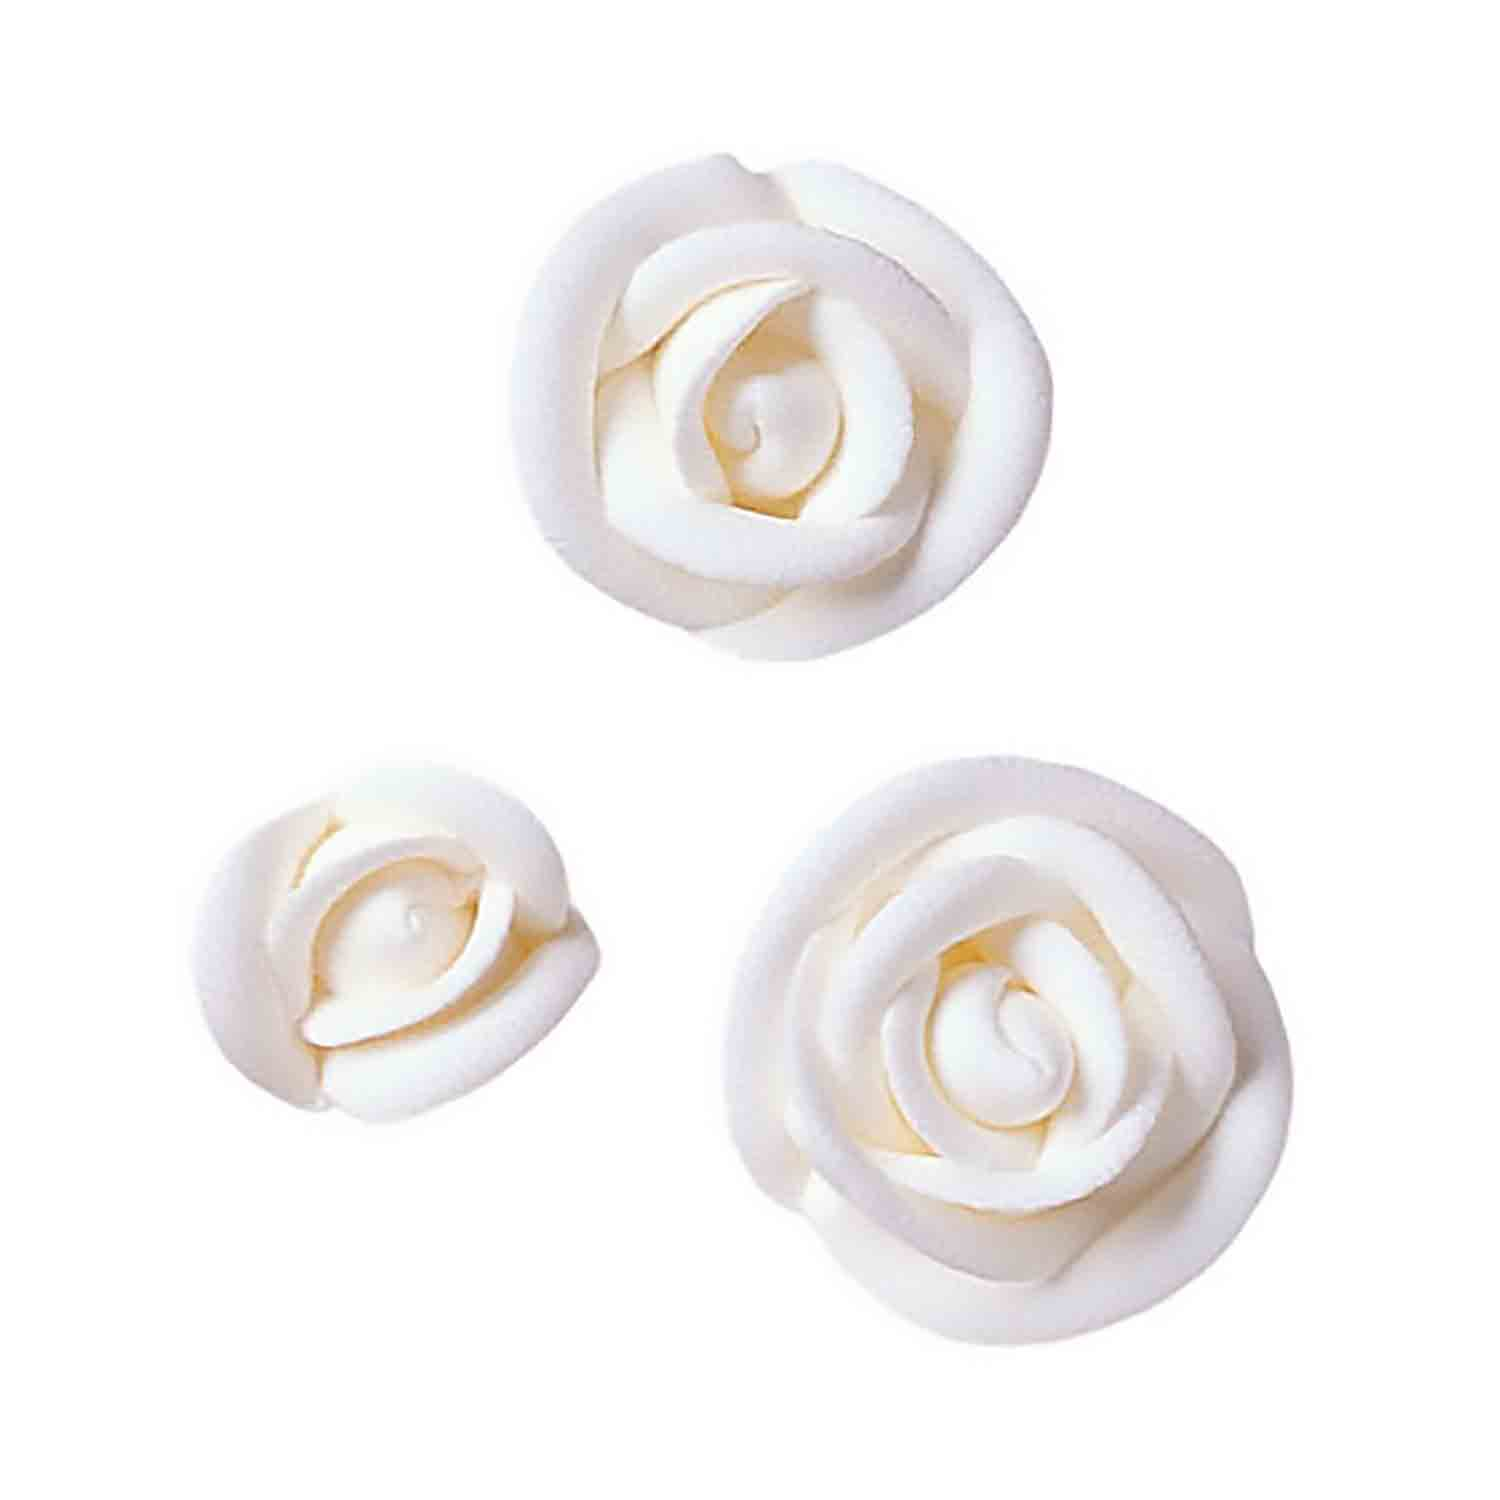 White Royal Icing Roses-Assorted Sizes